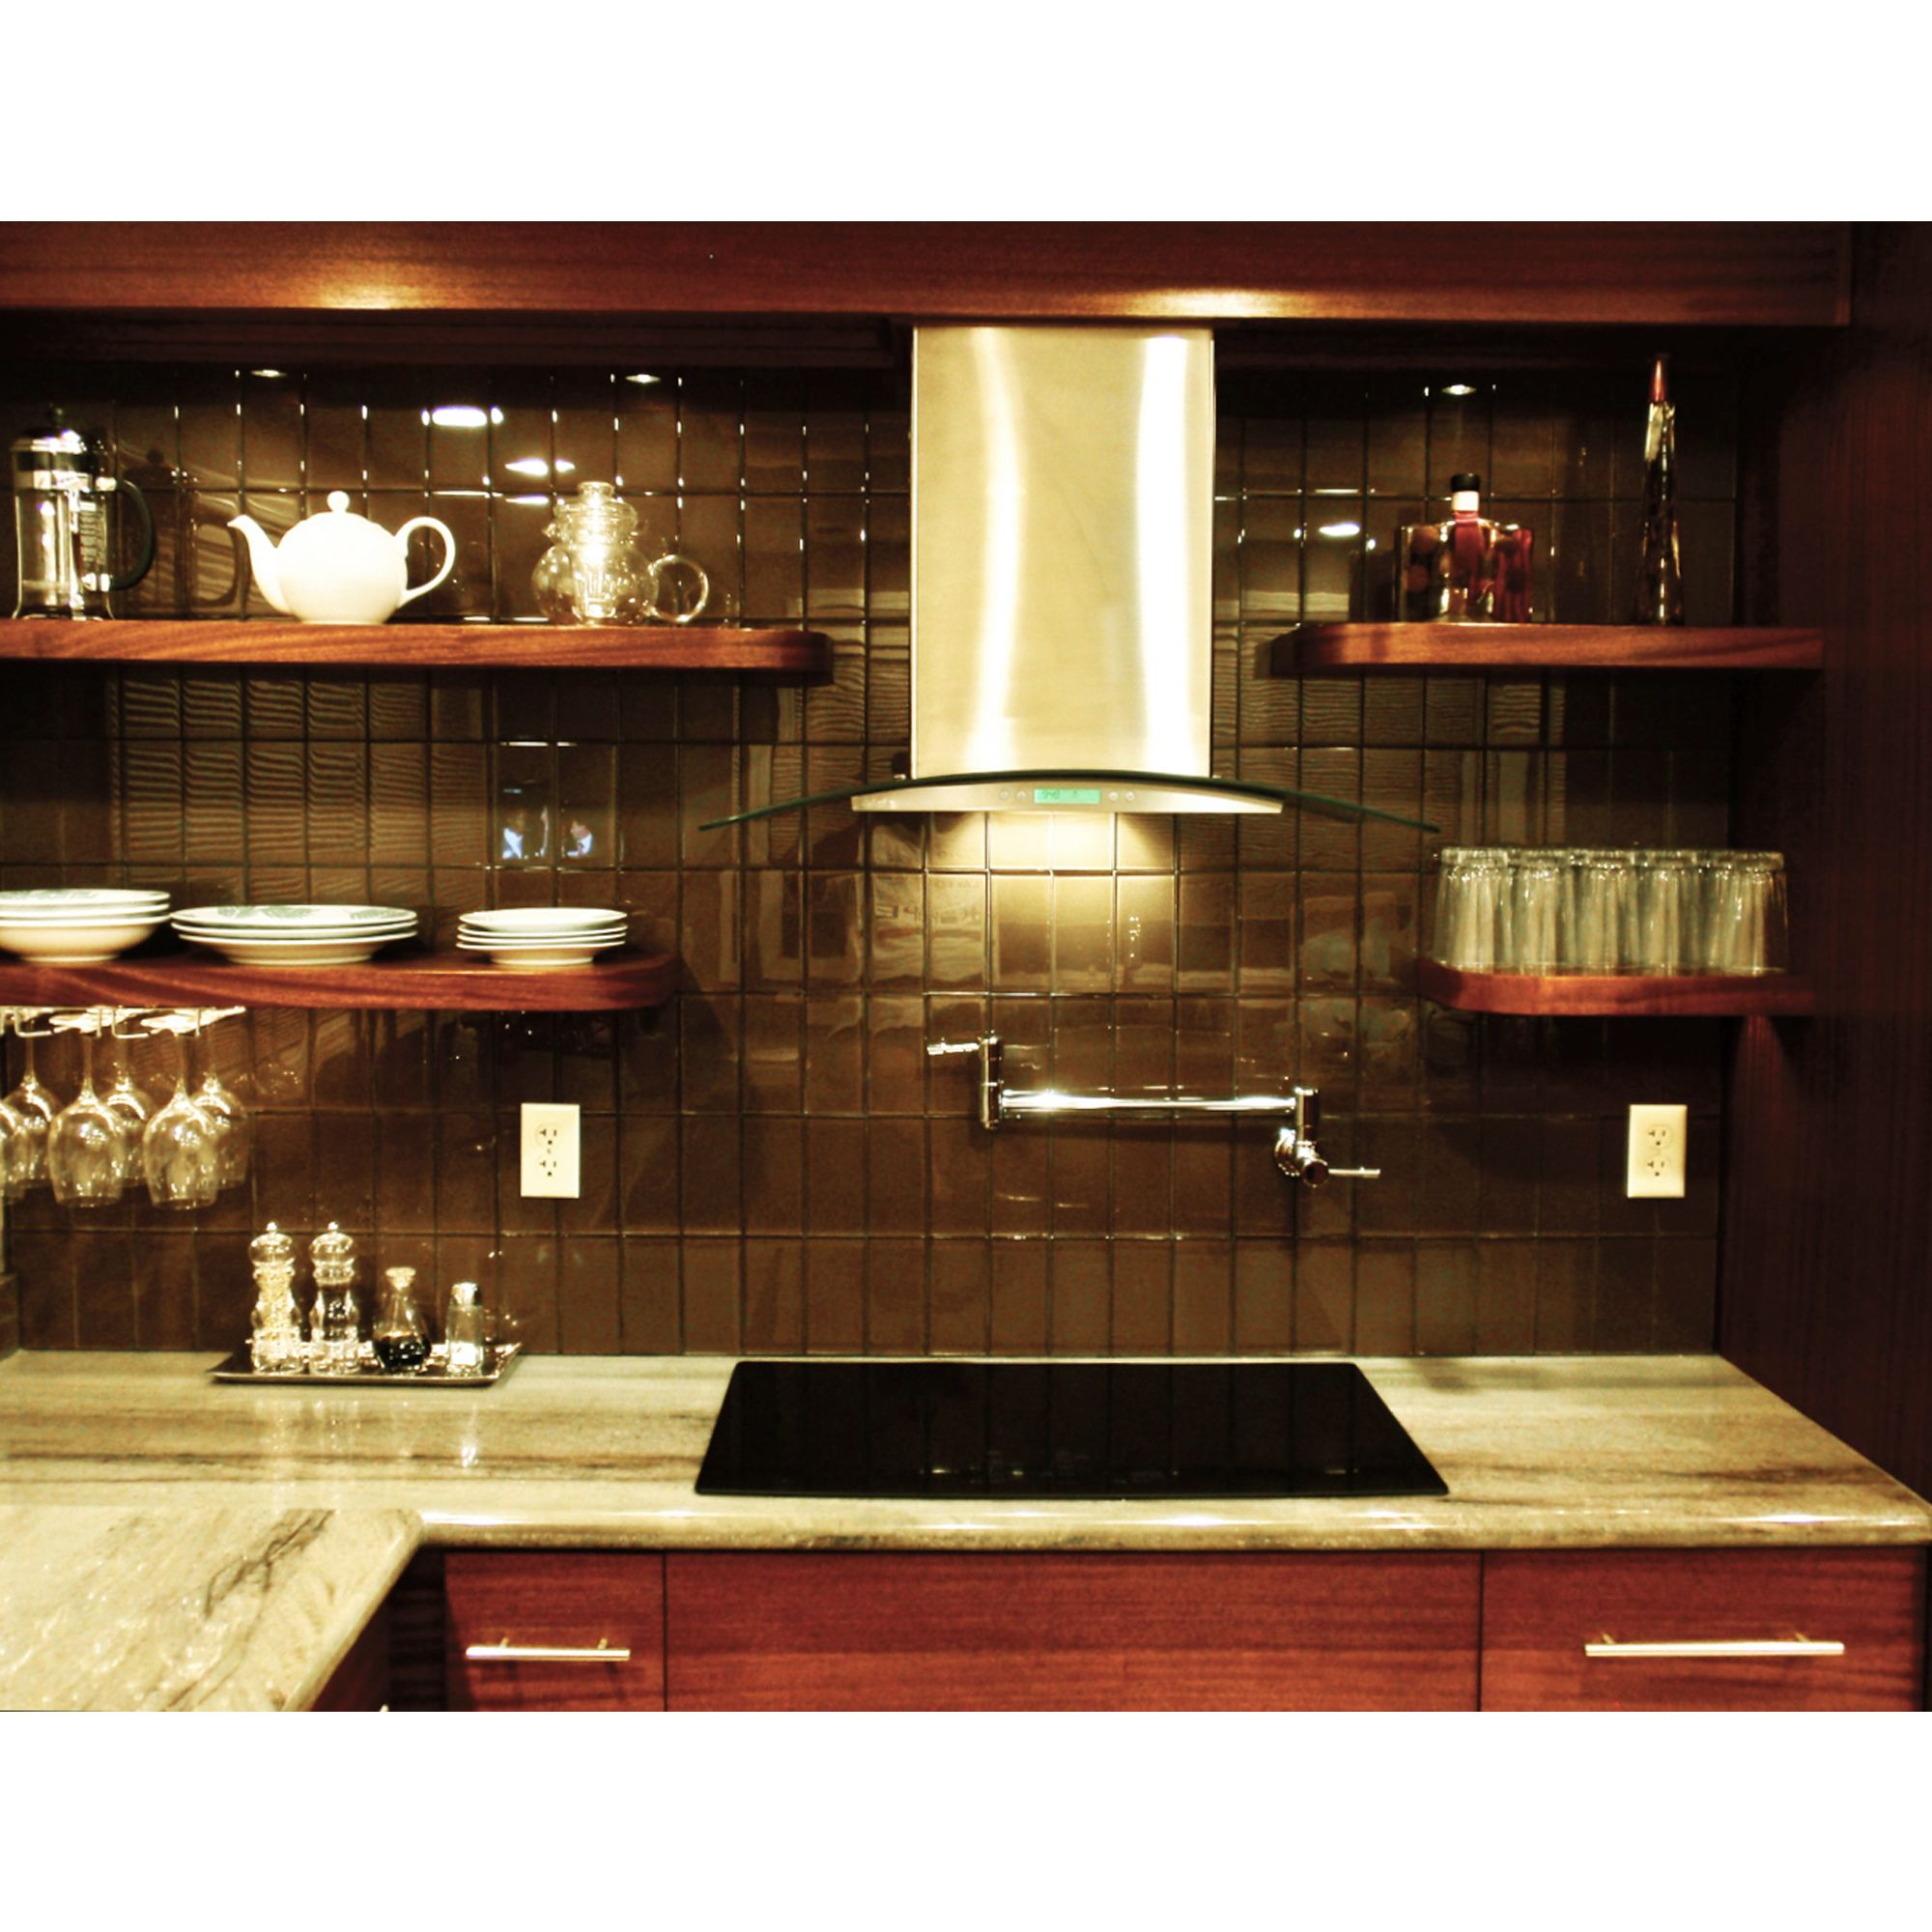 Lush Reef 3x6 Dark Chocolate Brown Glass Subway Tile Is Appropriate